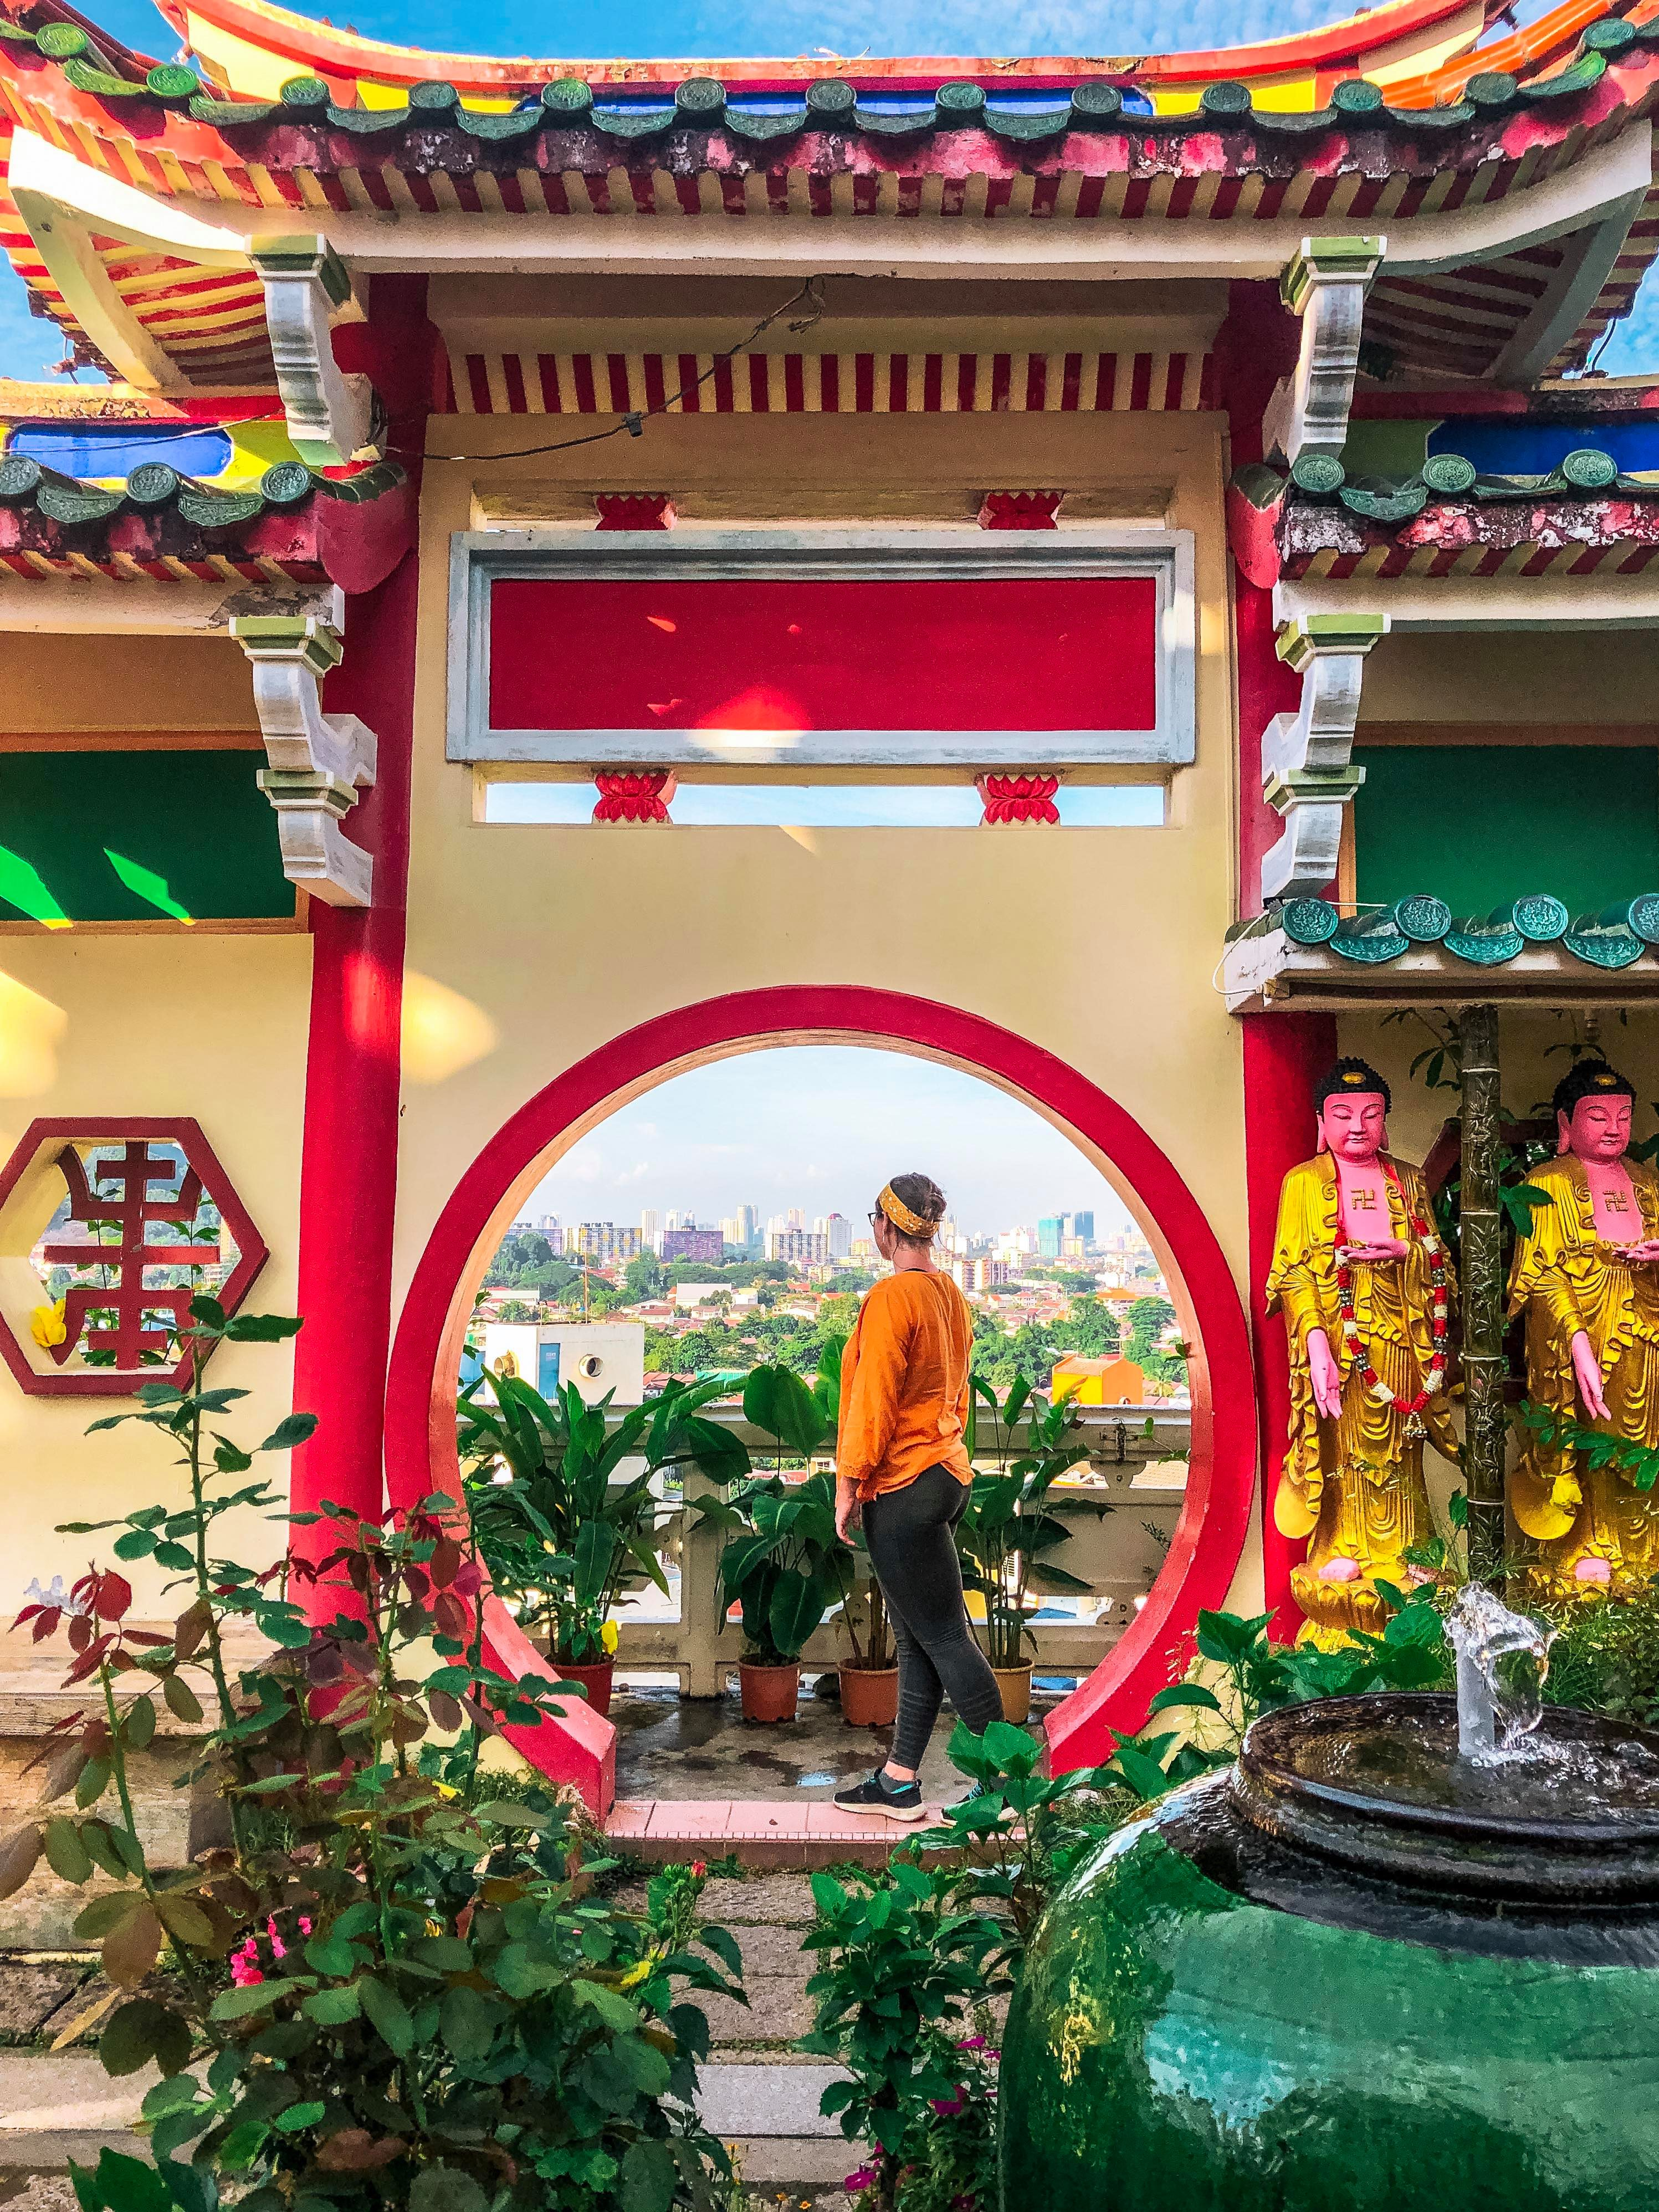 A girl looks over Georgetown in the middle of a red circle at a bright and colourful temple.